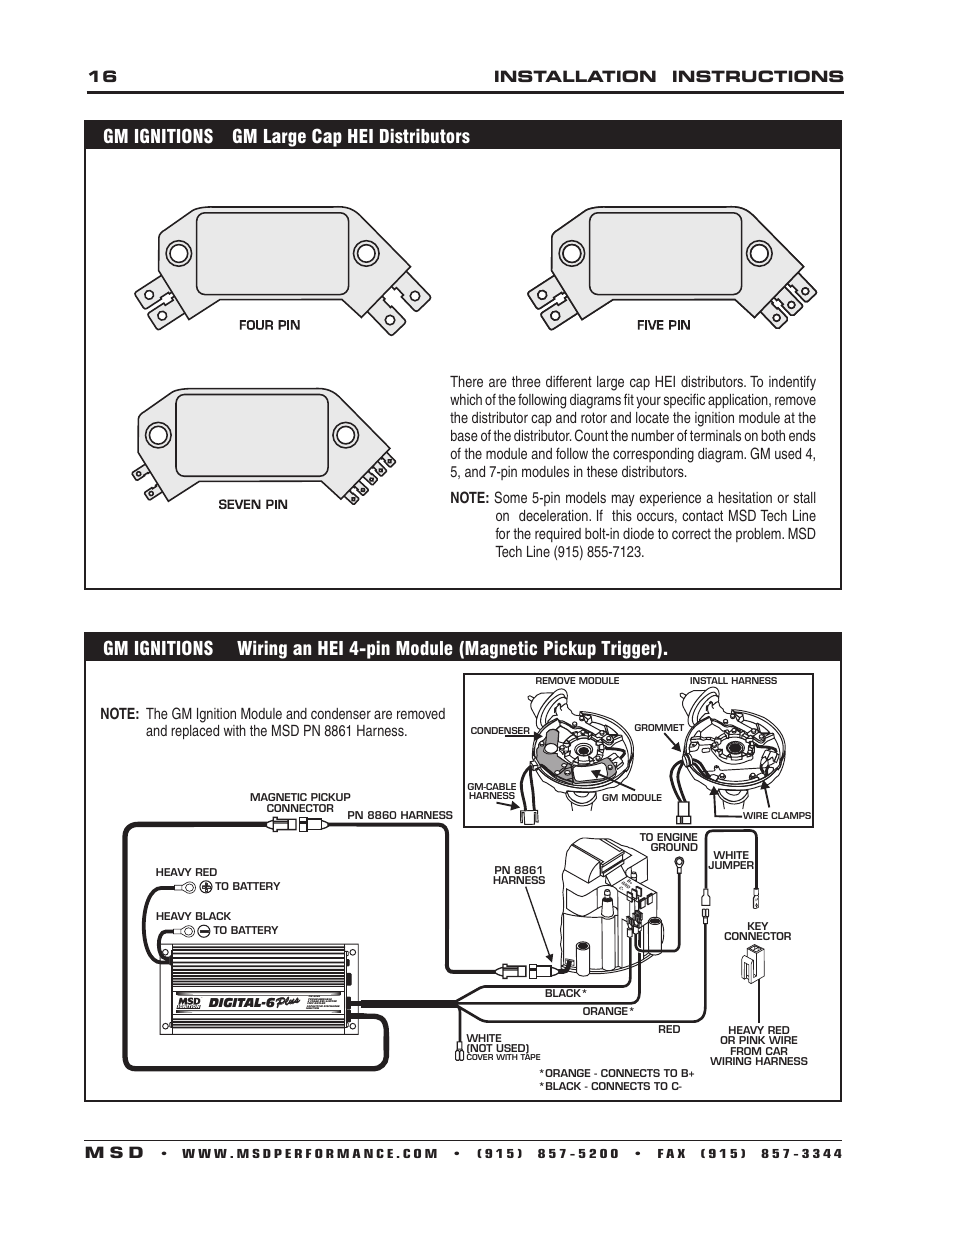 msd ignition wiring diagram solidfonts msd 6420 wiring solidfonts sample detail msd ignition wiring diagram nilza